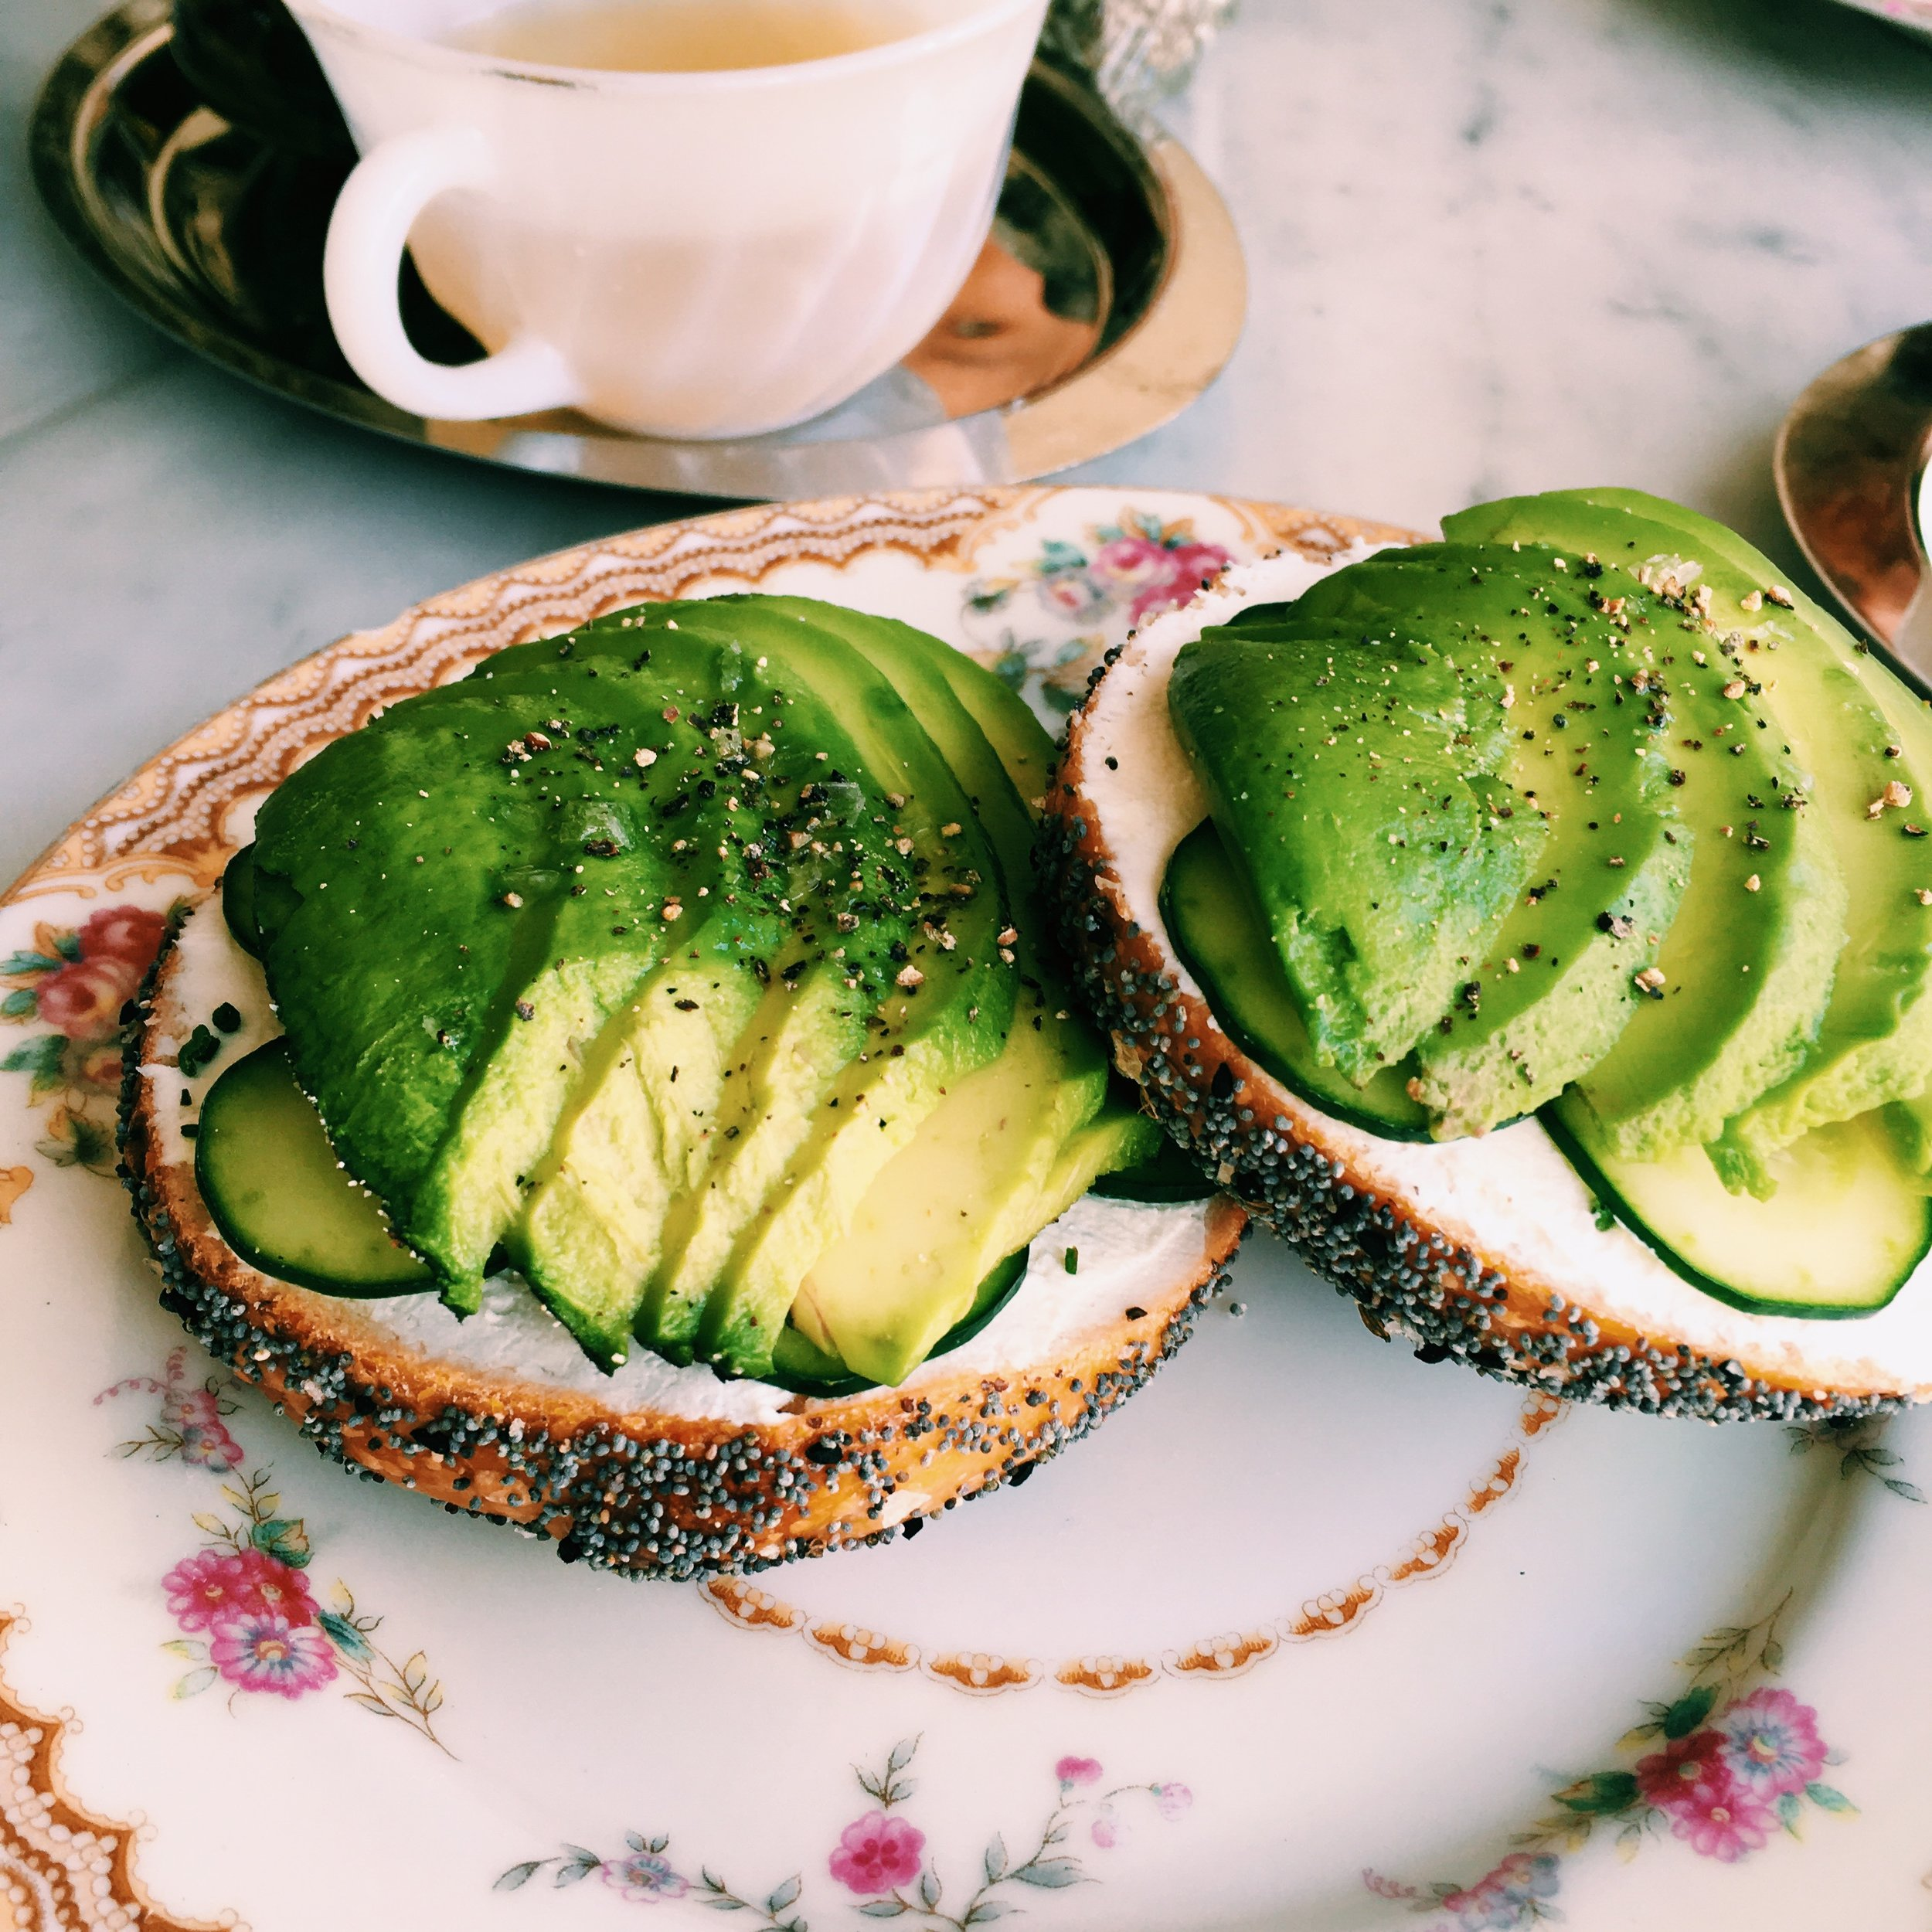 Bagel + Avocado